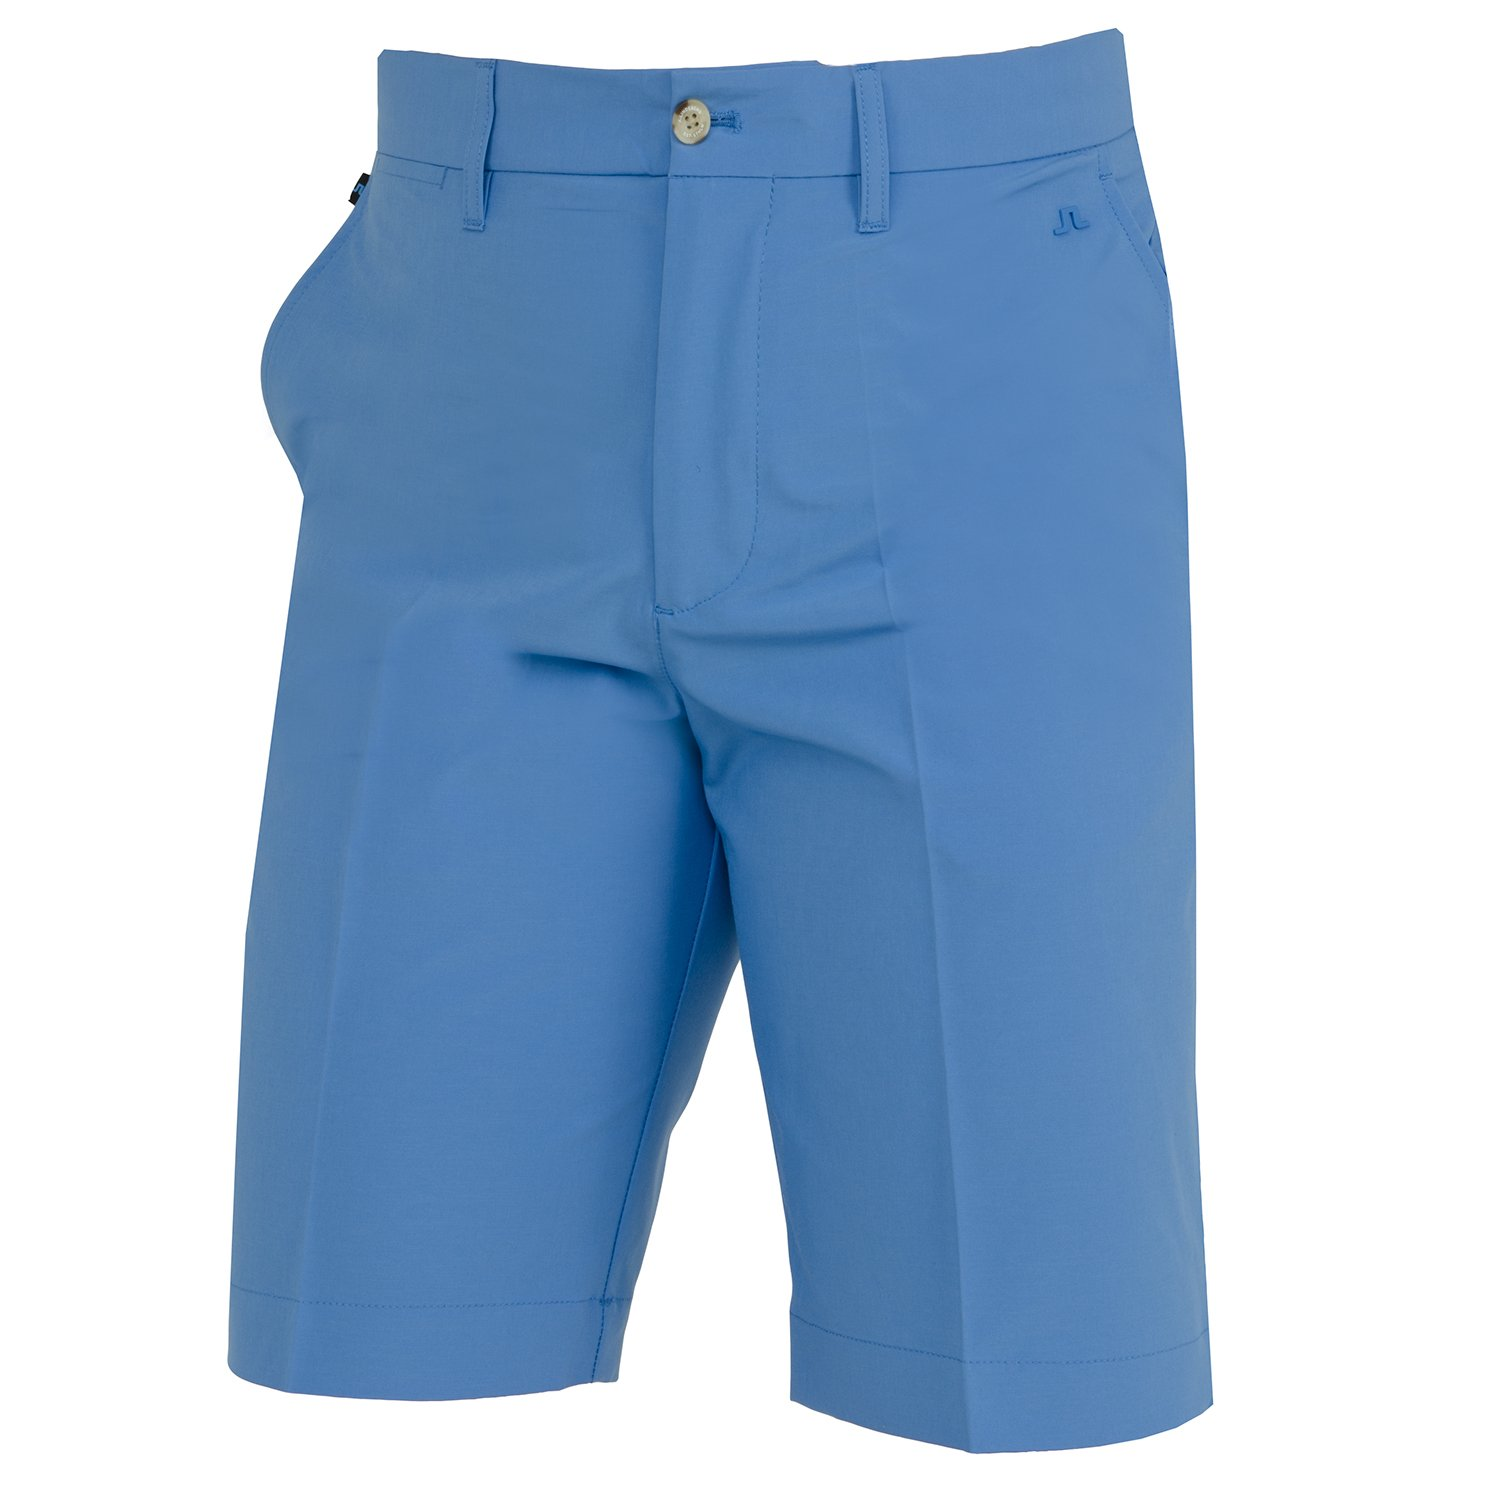 J. Lindeberg Hose Eloy TapeROT Micro Stretch Shorts 50 Silent Blau